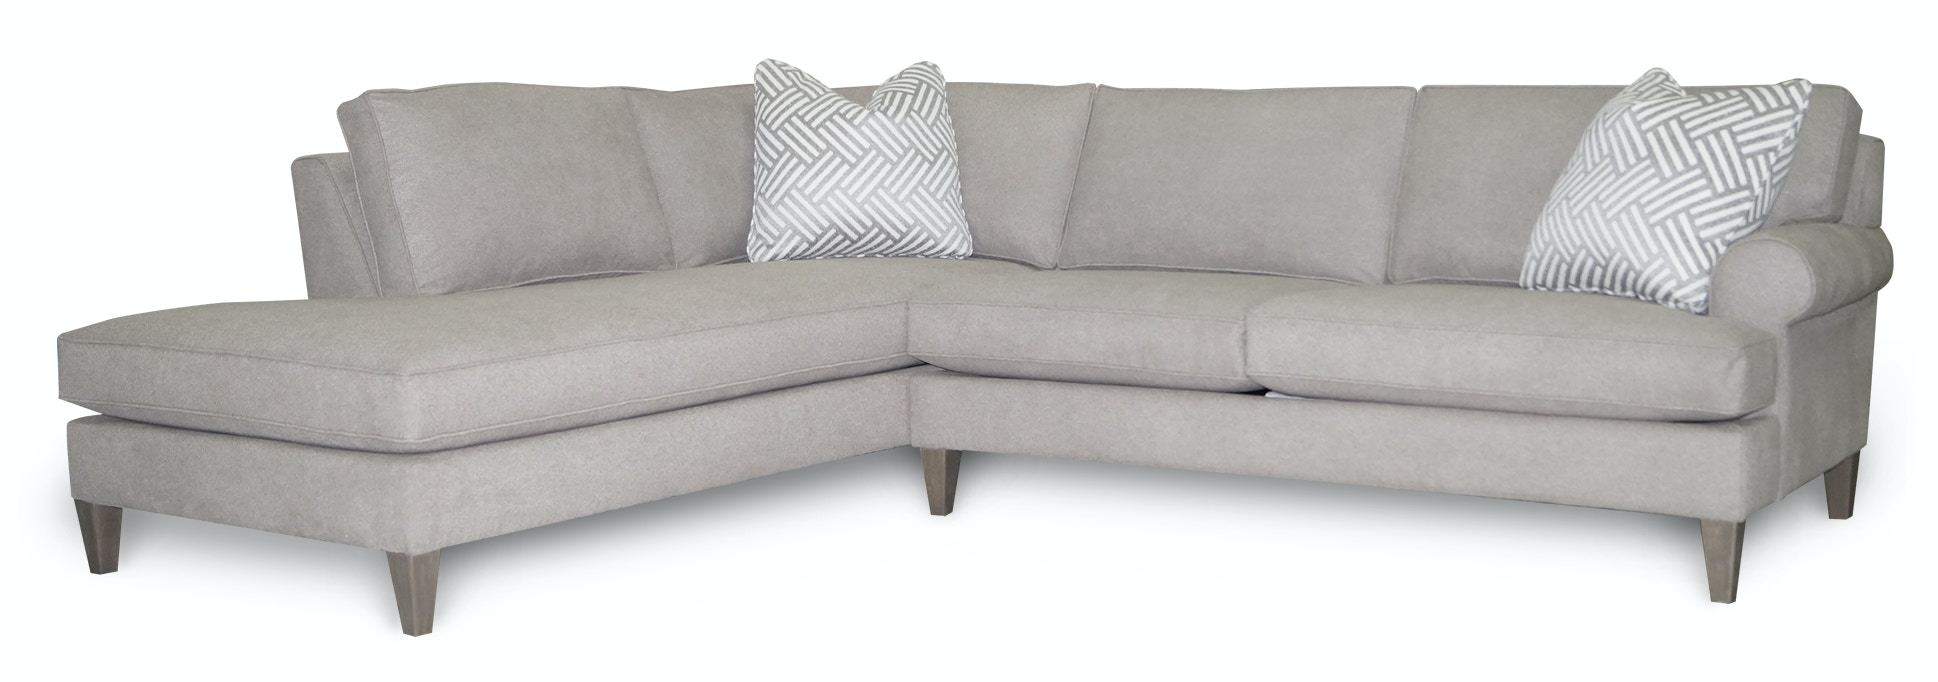 Stanford 2 Piece Sofa Chaise (LAF)